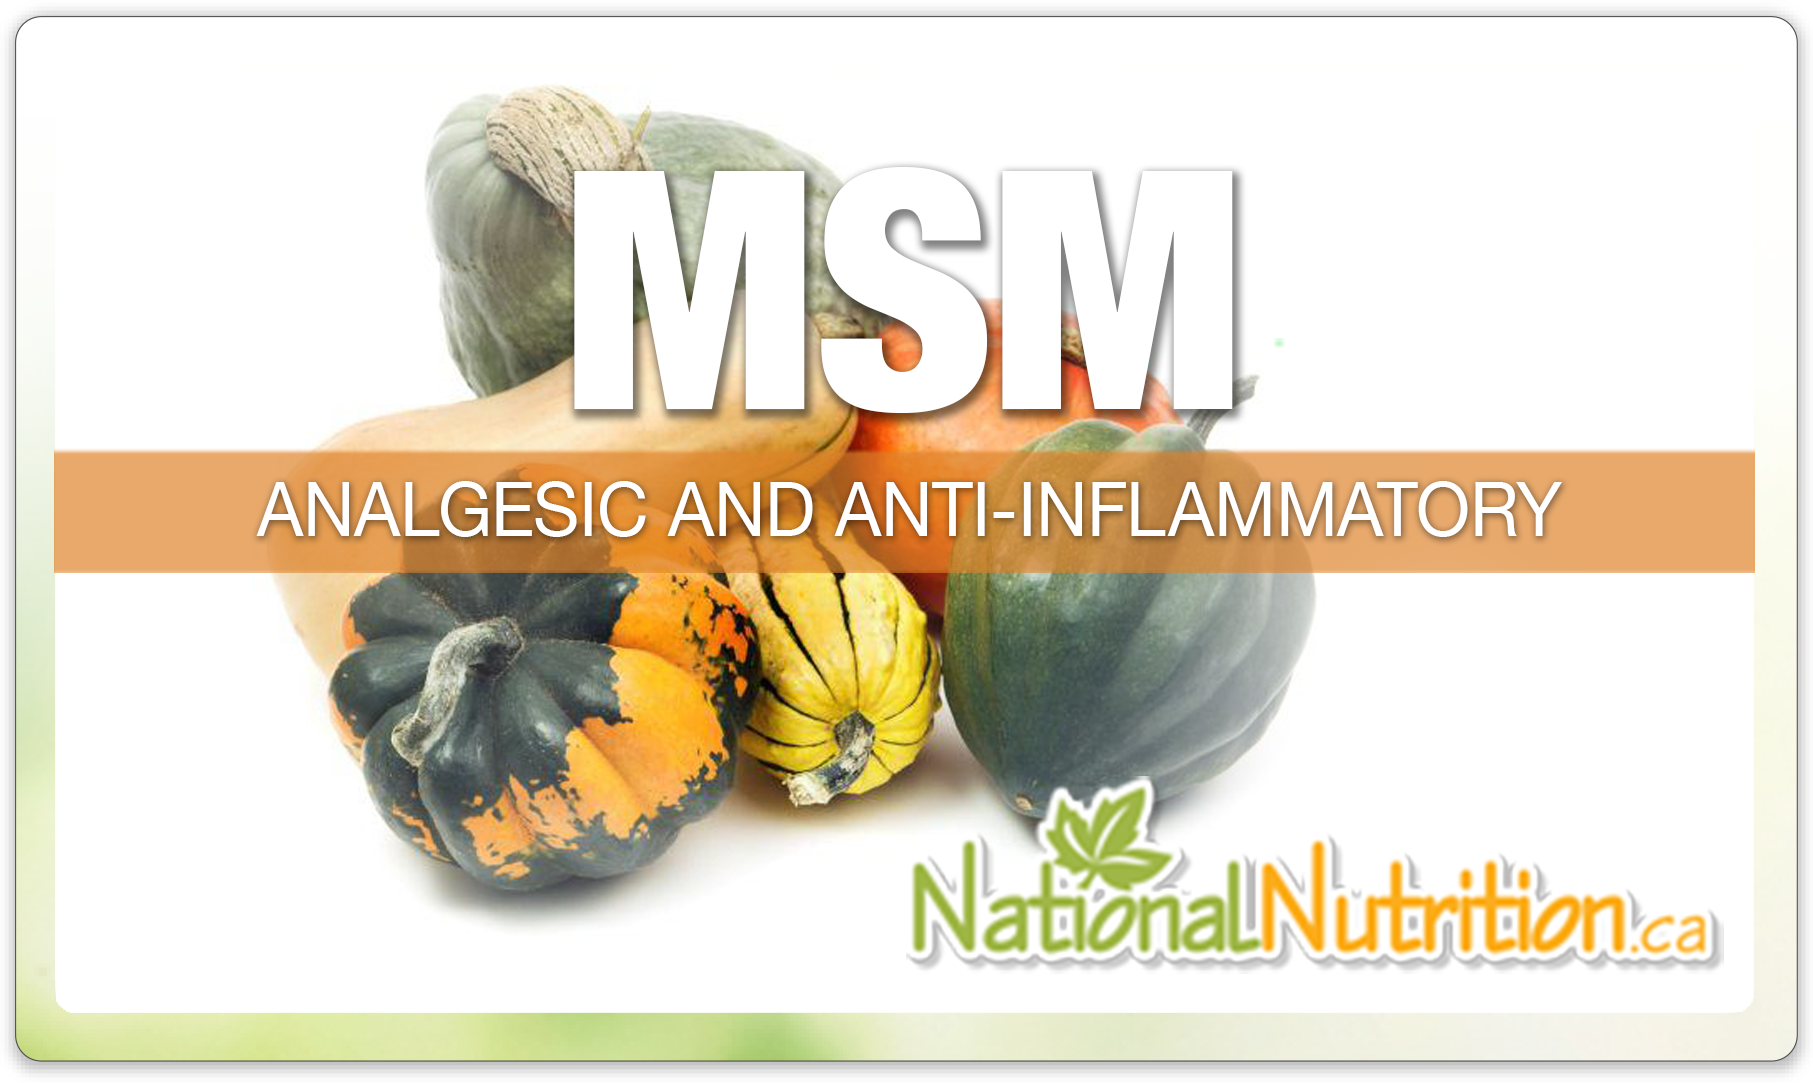 Msm - National Nutrition Articles